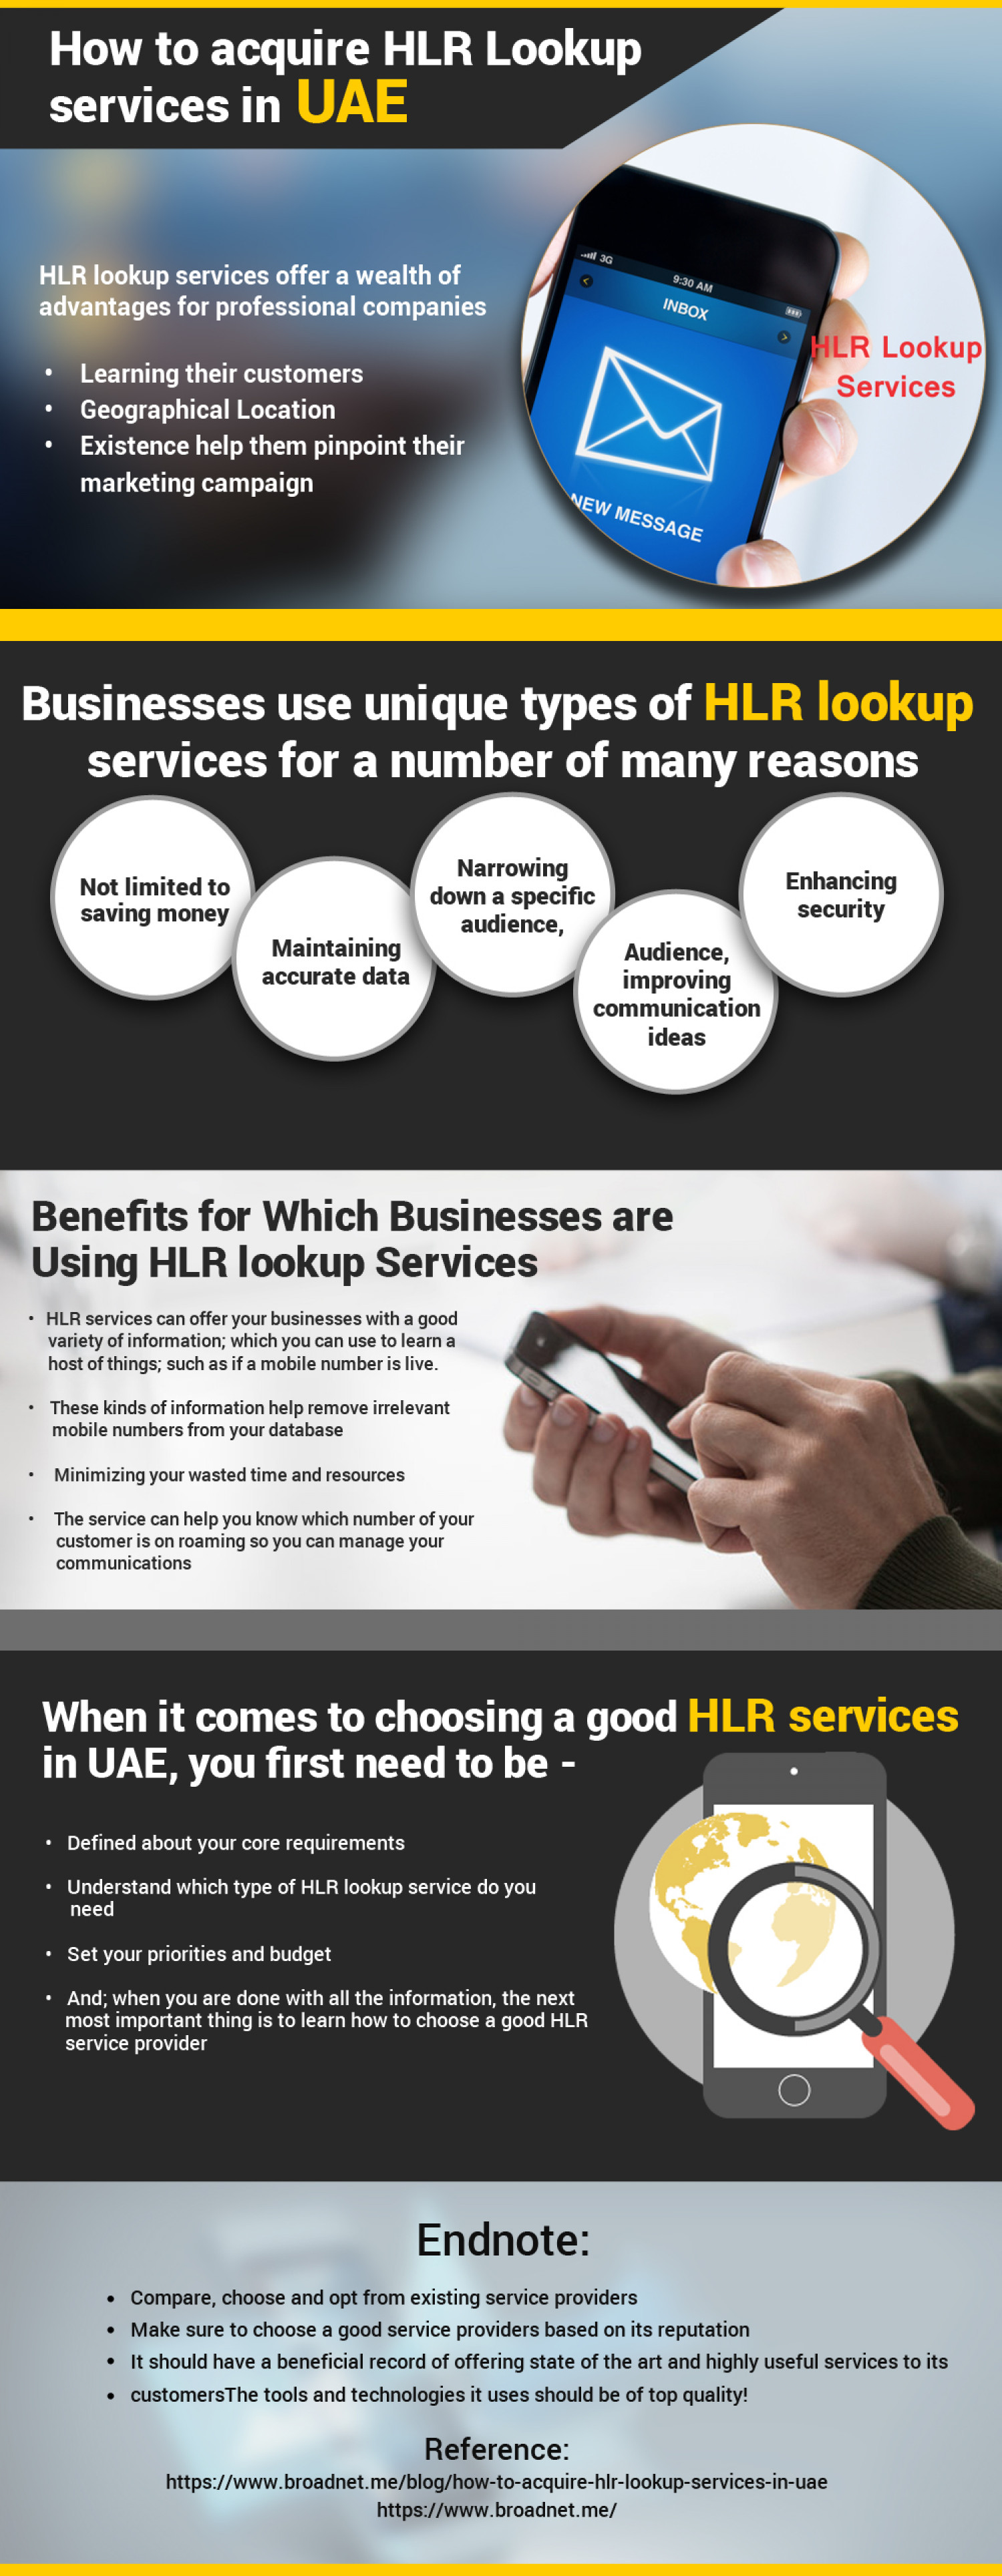 How to acquire HLR Lookup services in UAE Infographic